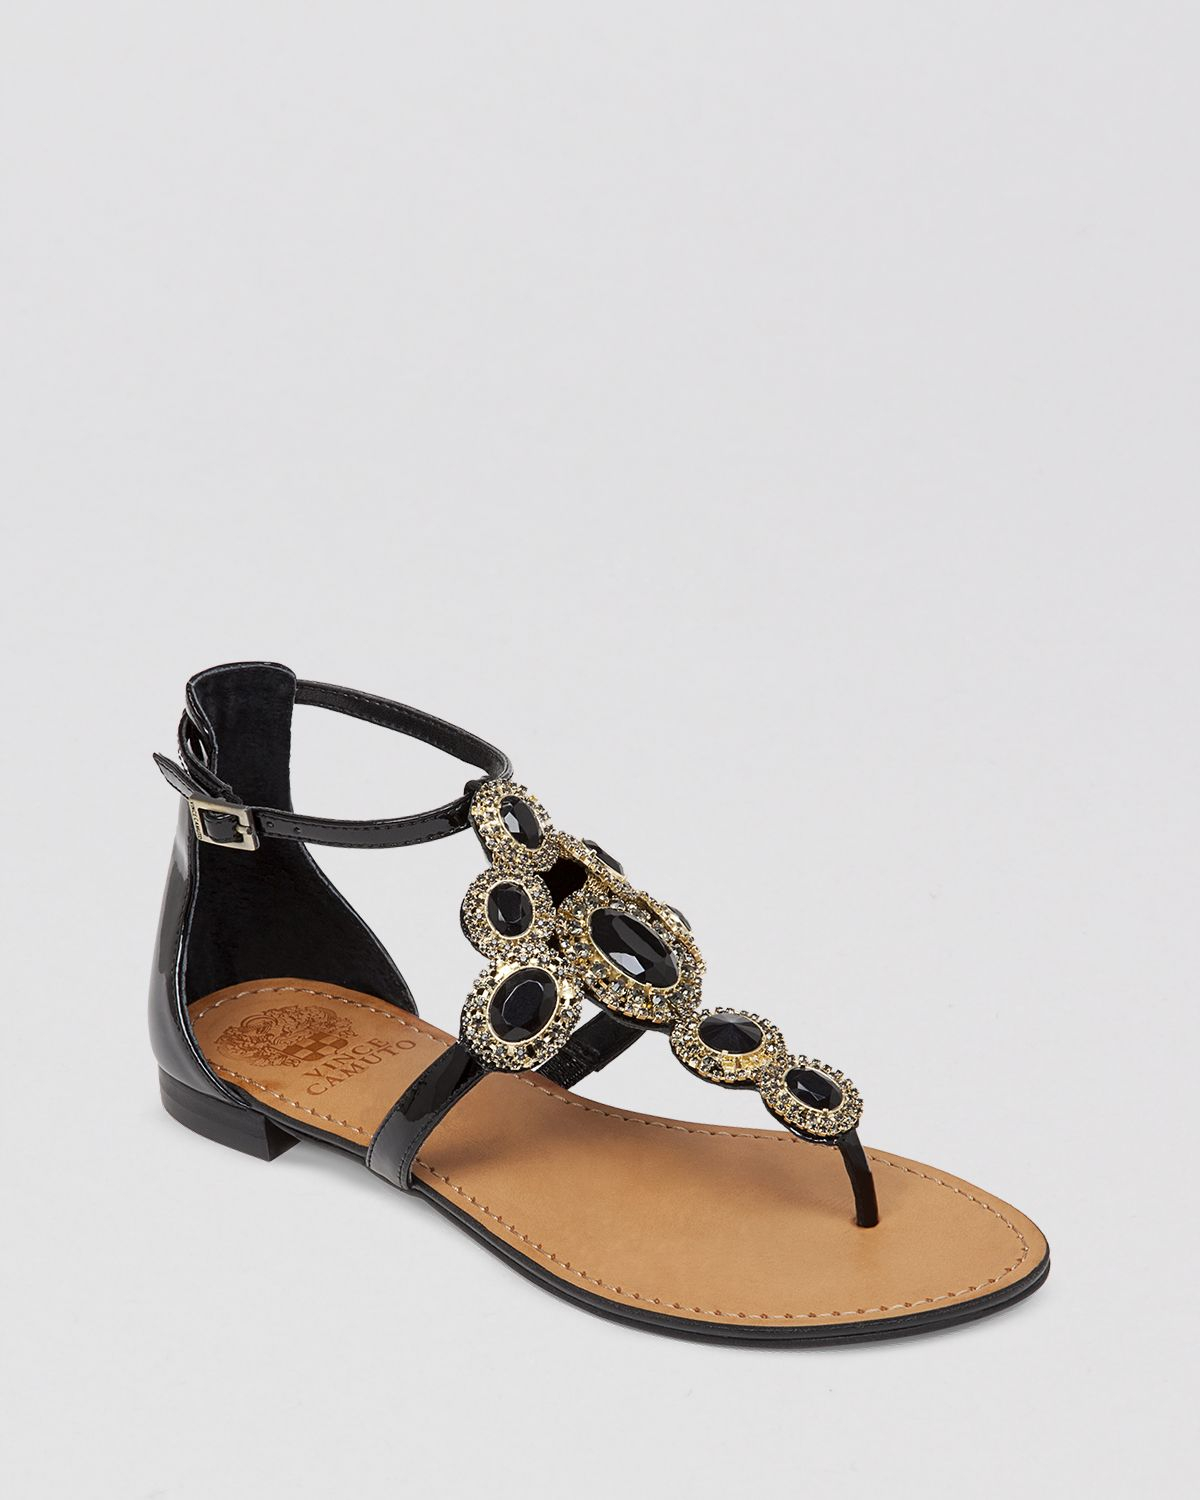 977310d10 Lyst - Vince Camuto Jeweled Thong Flat Sandals - Manelle in Black